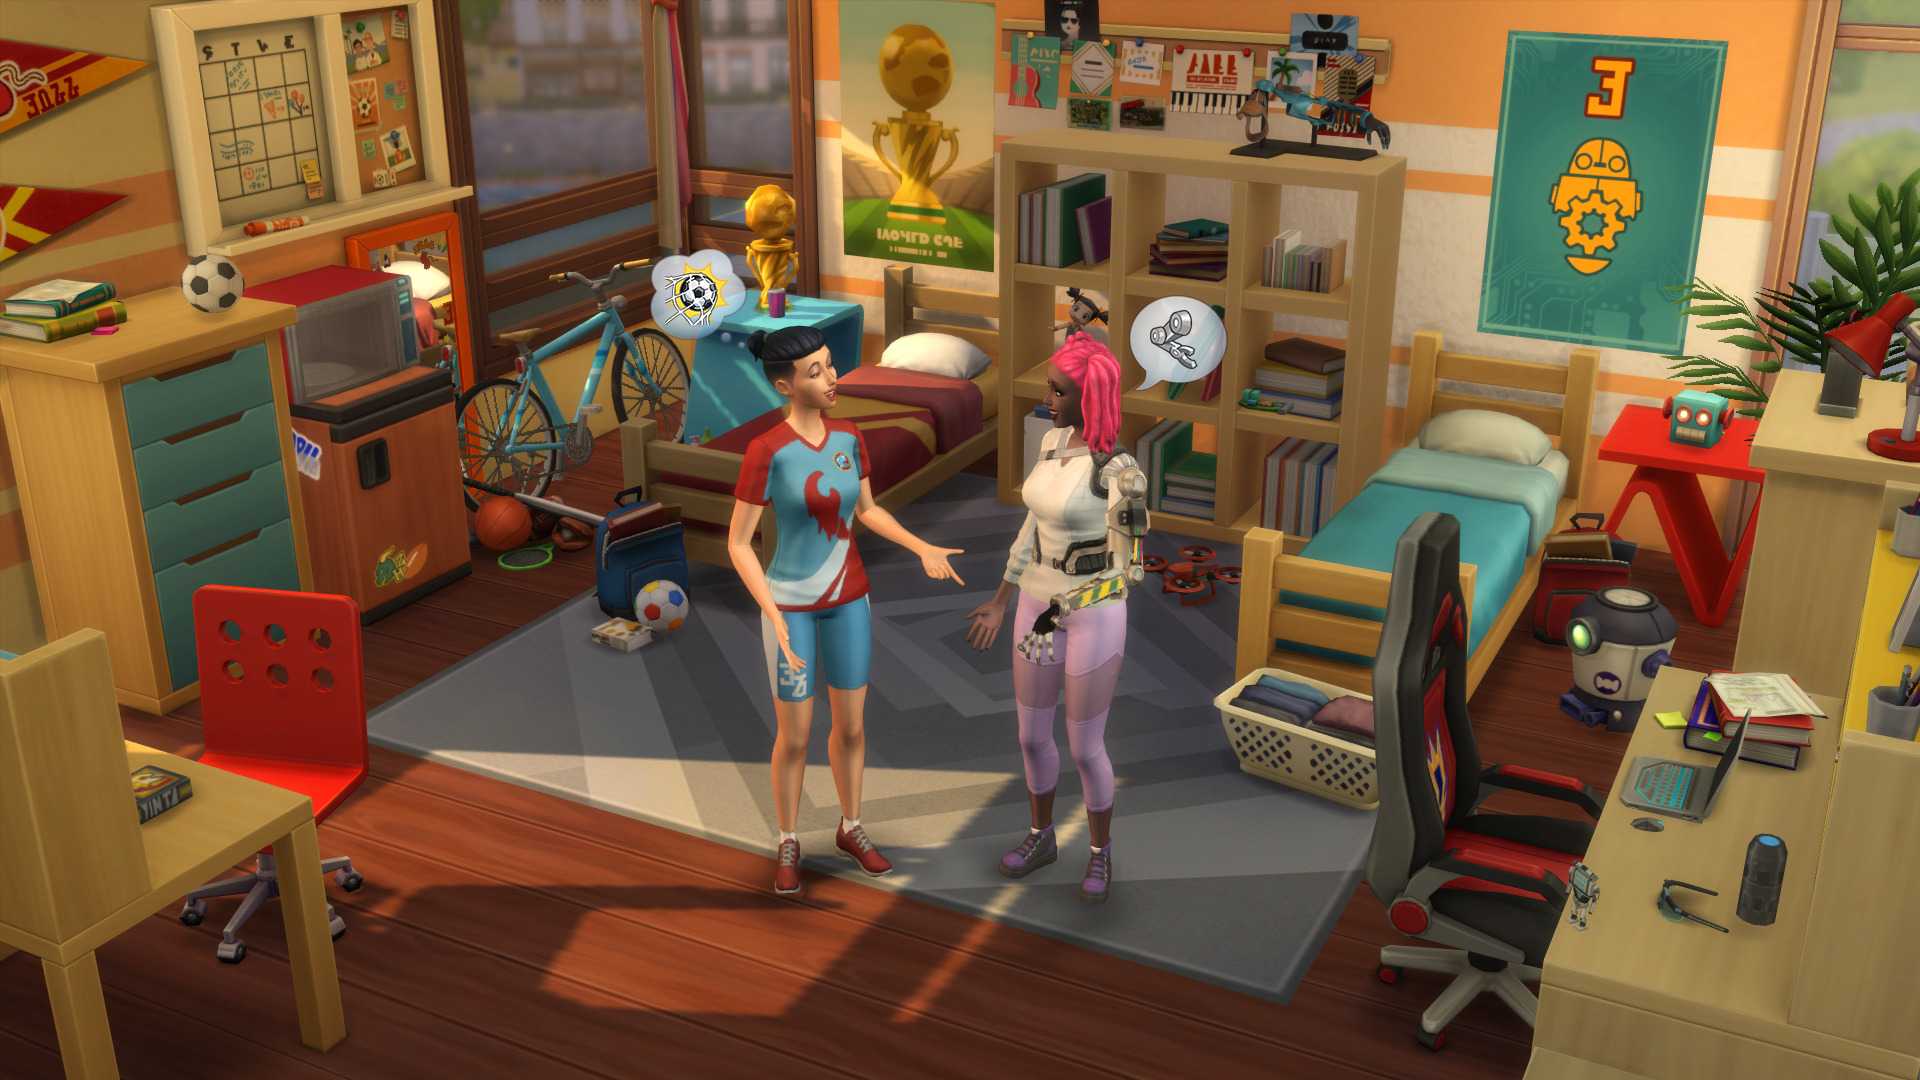 https://data2.origin.com/asset/content/dam/originx/web/app/games/the-sims/the-sims-4/expansion-packs/EP8-Discover-University/Screenshots/TS4_EP08_OFFICIAL_SCREEN_04_002.png/2a32fd87-564d-4afd-8245-f67e7bcf5f5a/original.png